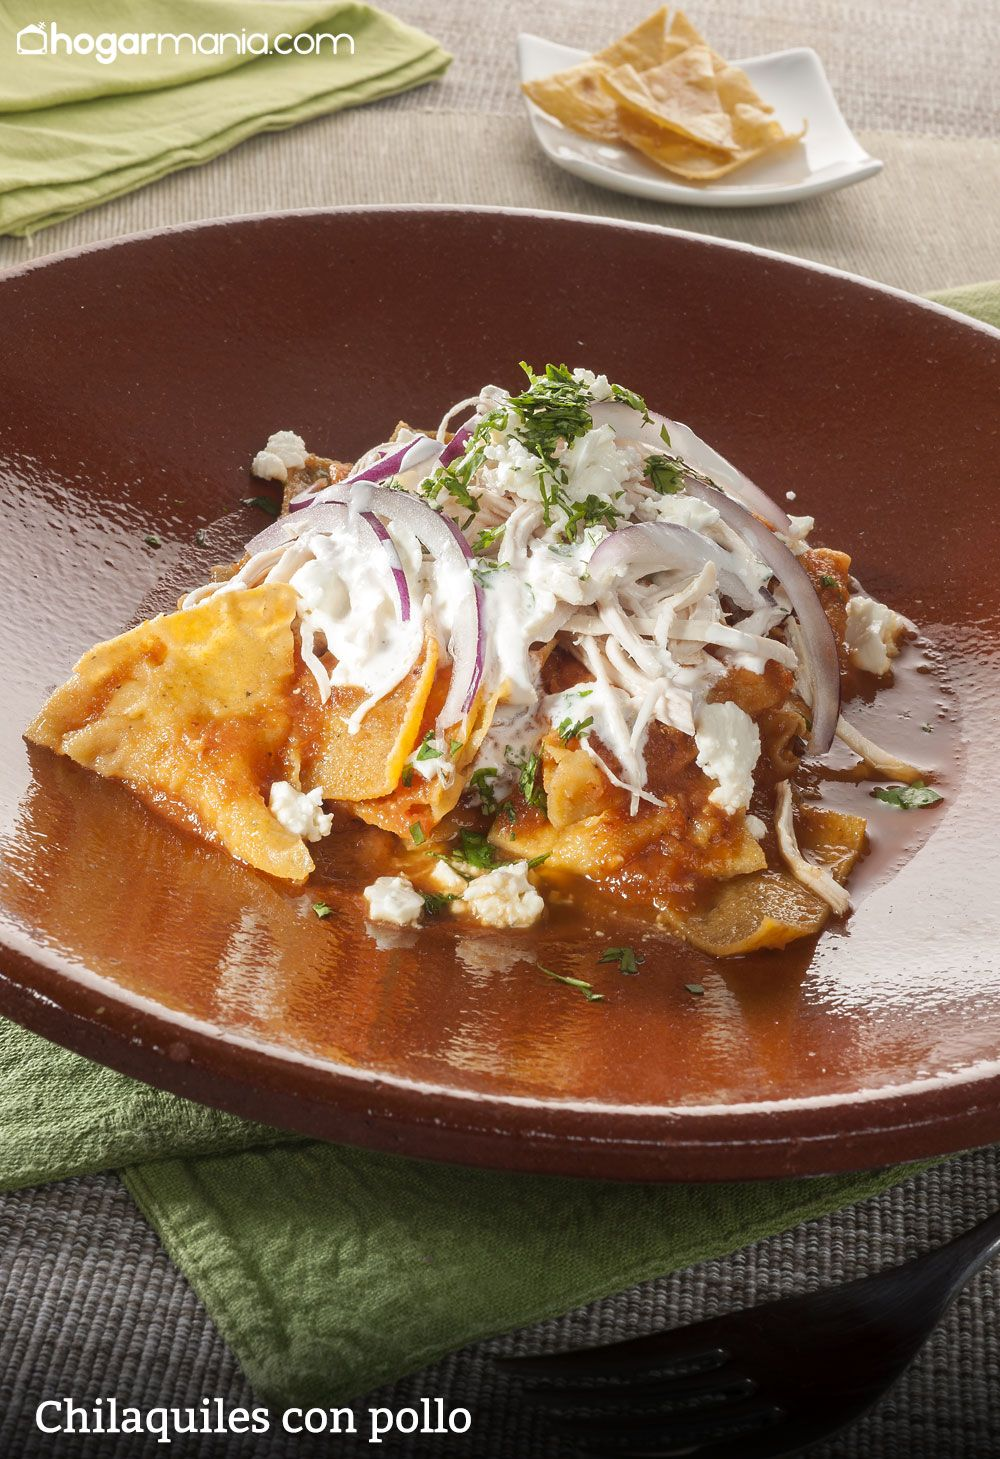 Chilaquiles con pollo